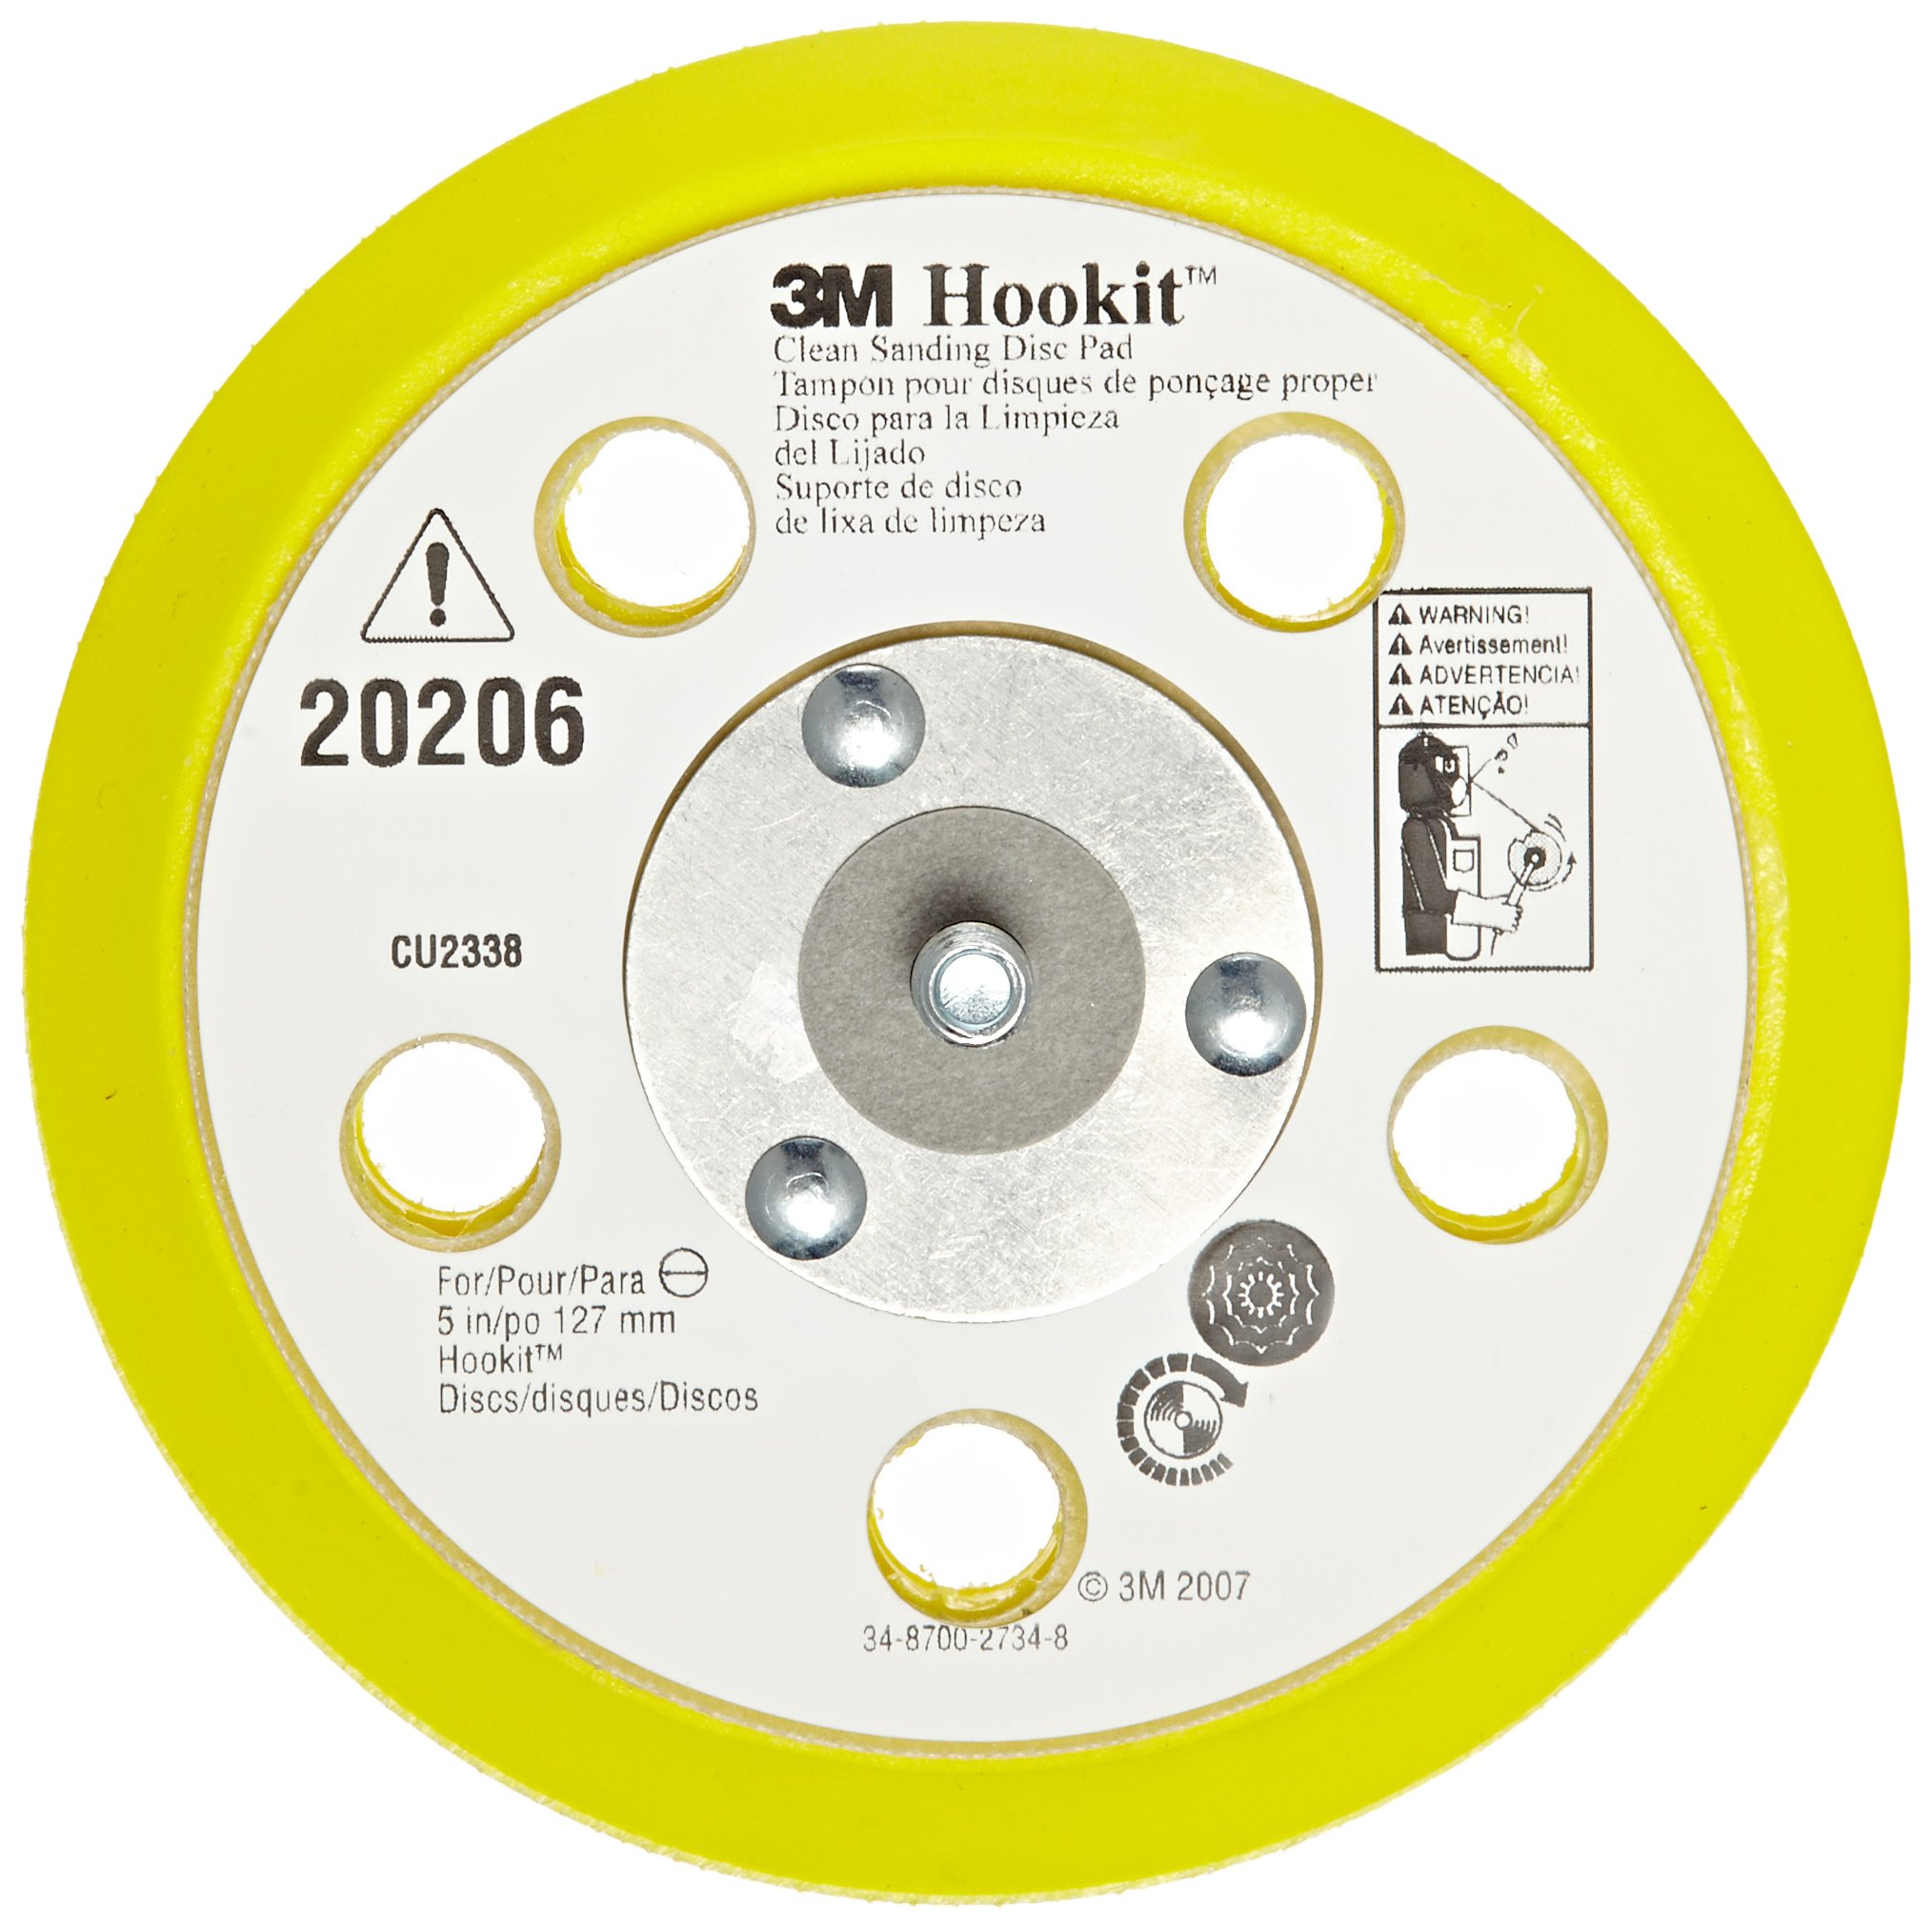 3M Clean Sanding Back Up Pad 20206, Hook-and-Loop Attachment, 5'' Diameter x 0.50'' Thick, 31 Hole (Pack of 1)